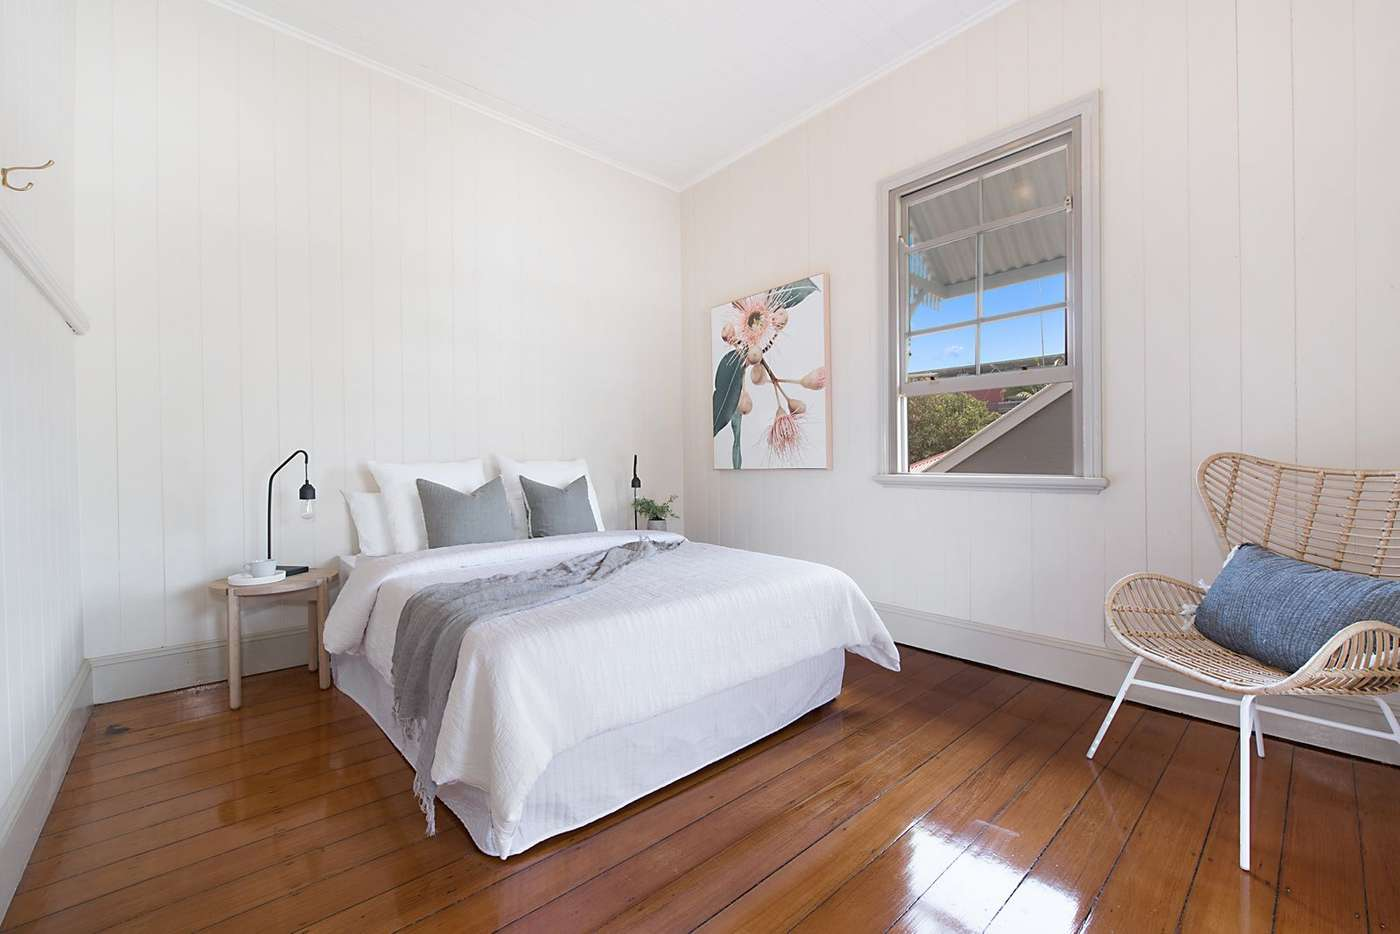 Sixth view of Homely house listing, 28 Sheriff Street, Petrie Terrace QLD 4000